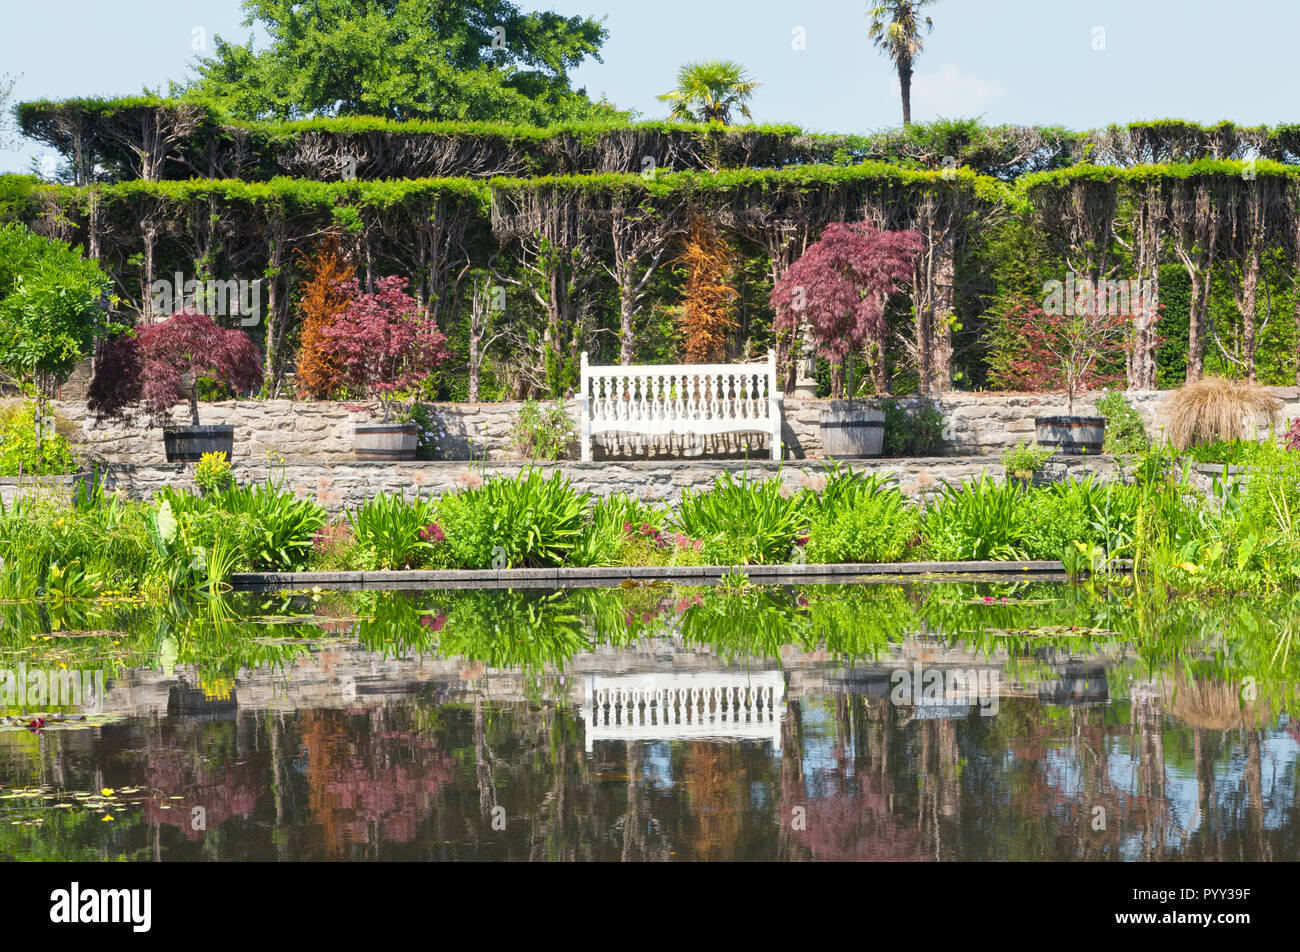 White wooden bench reflecting in pond water with aquatic plants, by trimmed conifer hedge, barrel pots with ref maple trees, in English summer garden  - Stock Image